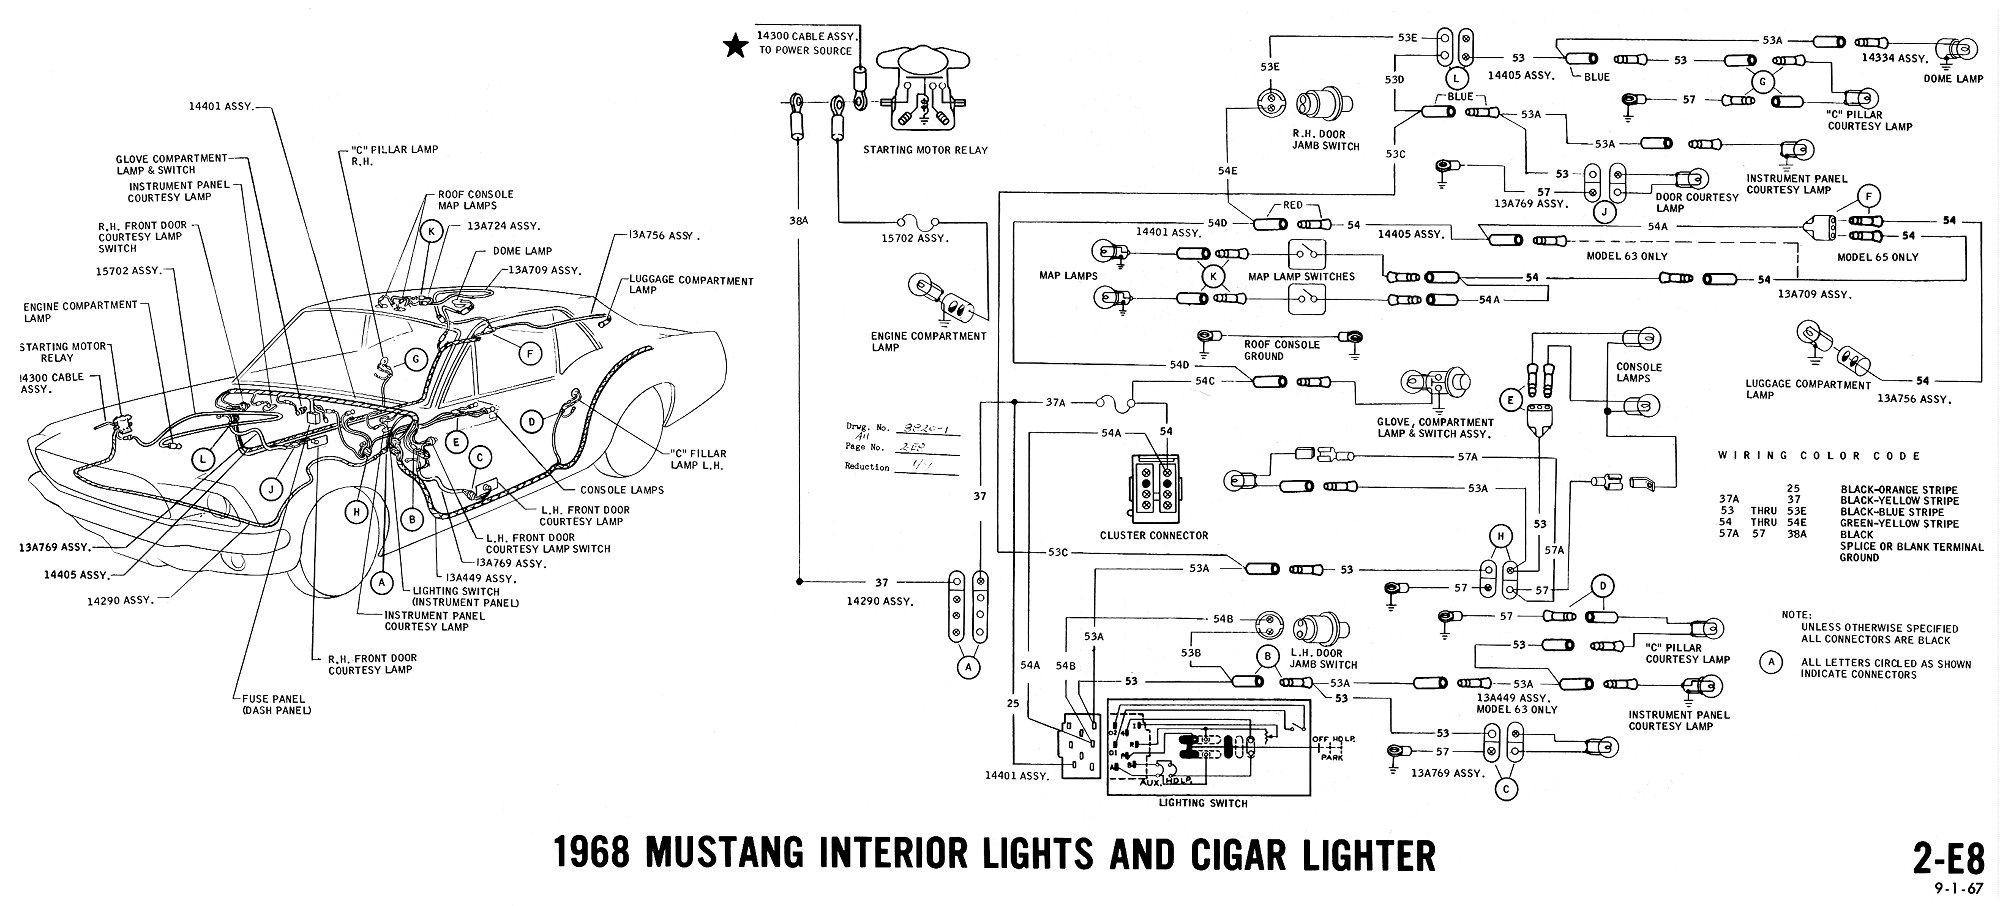 1967 Mustang Wiring Harness Diagram Schematic - Wiring Diagram All on 2003 mustang wiring harness, 1964 mustang wiring harness, 1989 mustang wiring harness, 2004 mustang wiring harness, 2000 mustang wiring harness, 1994 mustang wiring harness, 1965 mustang wiring harness, 1969 mustang wiring harness, 1986 mustang wiring harness, 1991 mustang wiring harness, 1973 mustang wiring harness, 1982 mustang wiring harness, 1970 mustang wiring harness, 2001 mustang wiring harness, 1988 mustang wiring harness, 1971 mustang wiring harness,